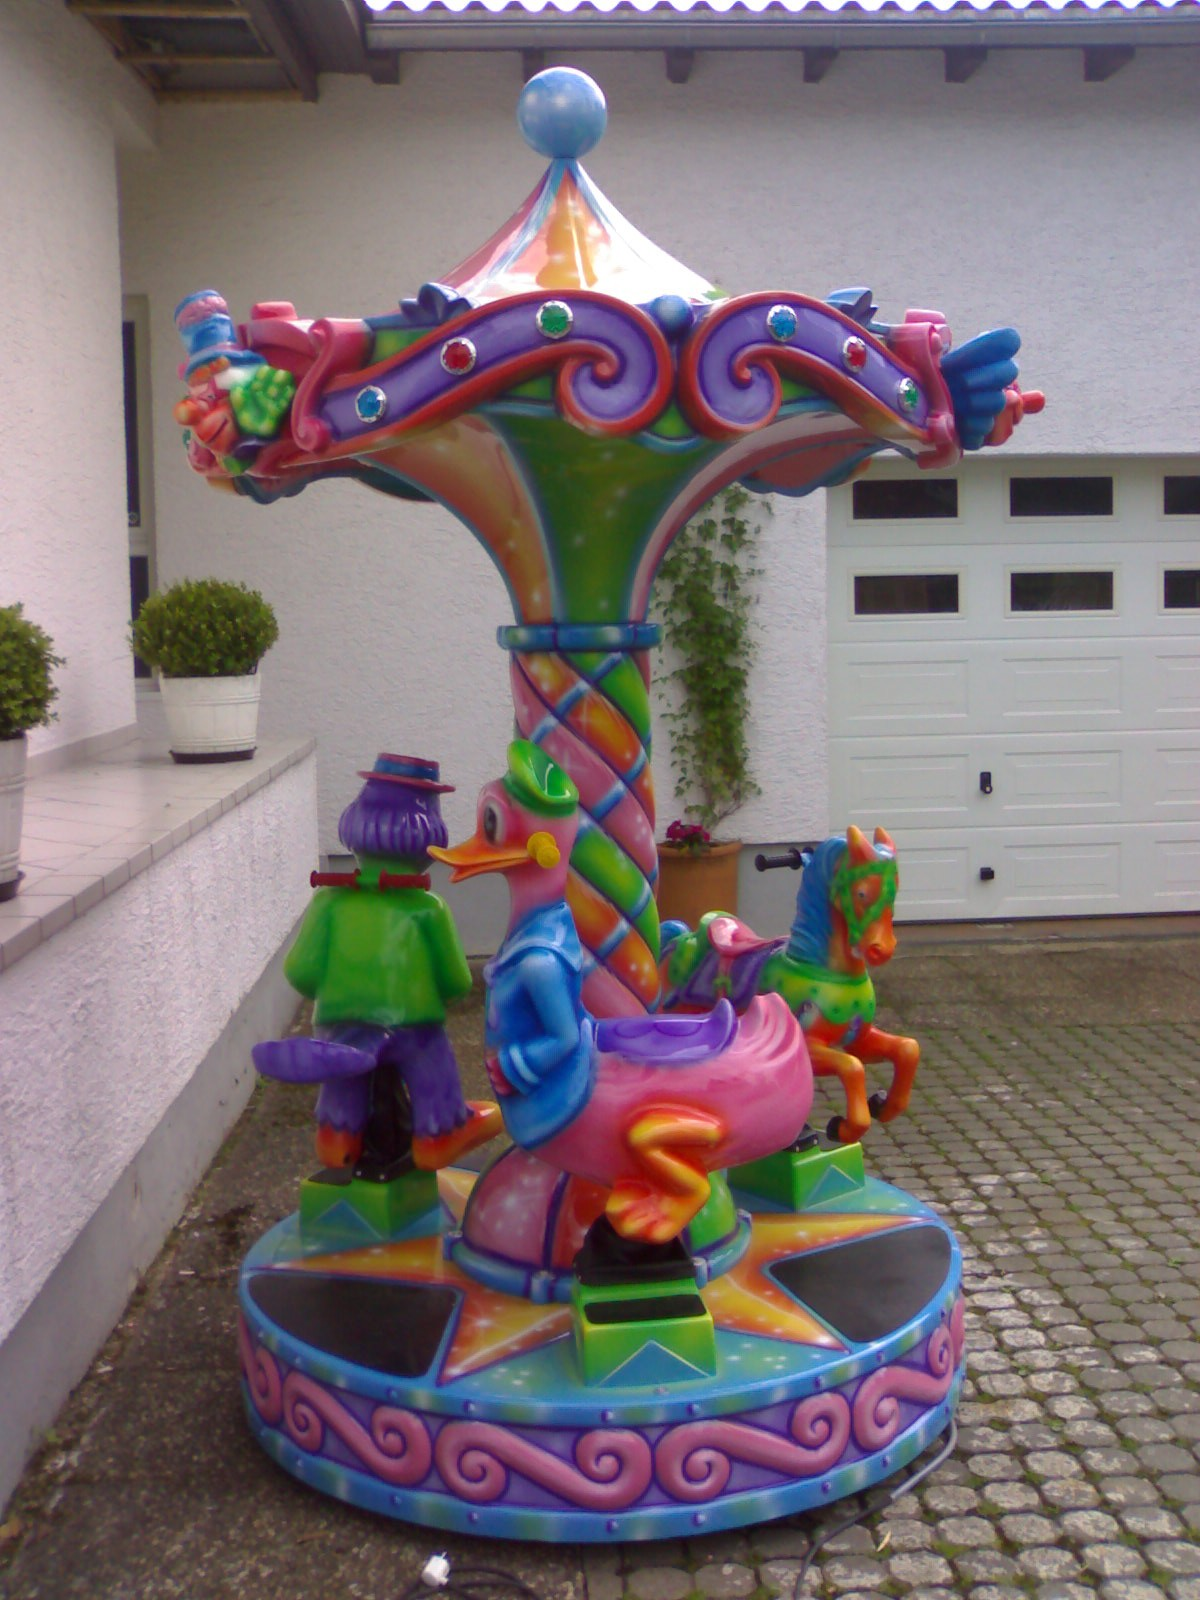 Large 3-seater carousel with moving figures